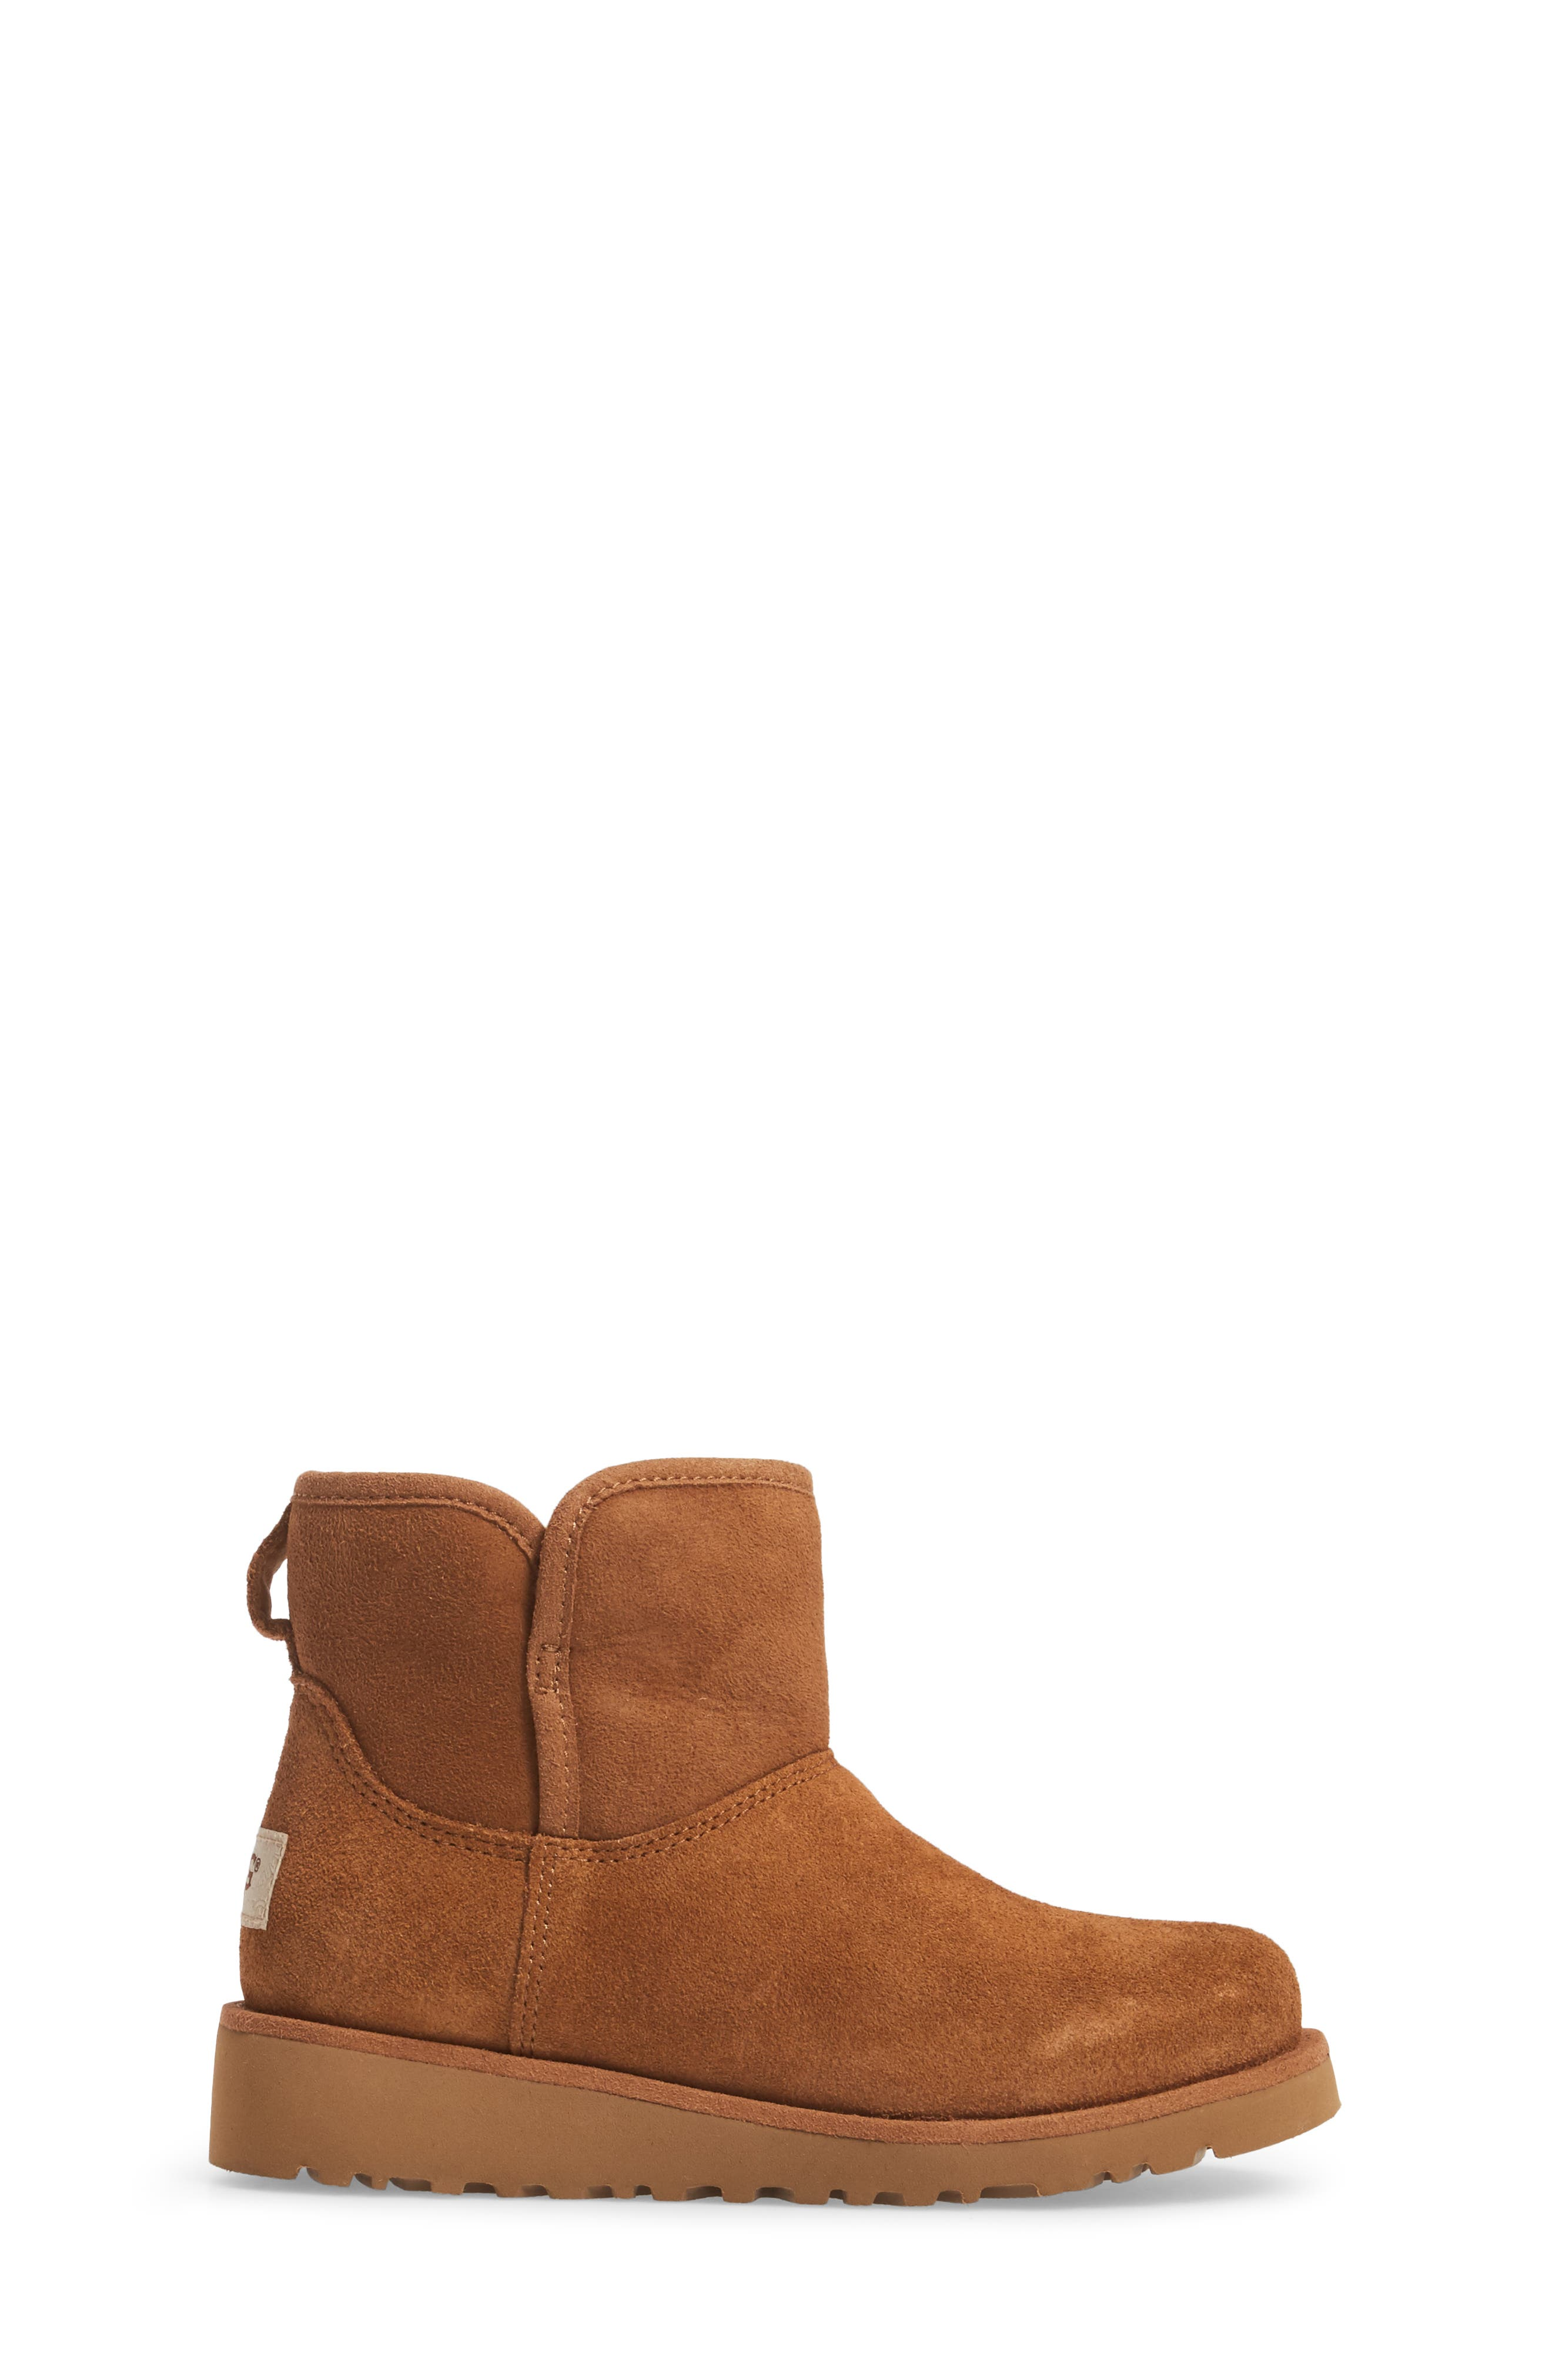 Katalina II Water-Resistant Genuine Shearling Bootie,                             Alternate thumbnail 3, color,                             Chestnut